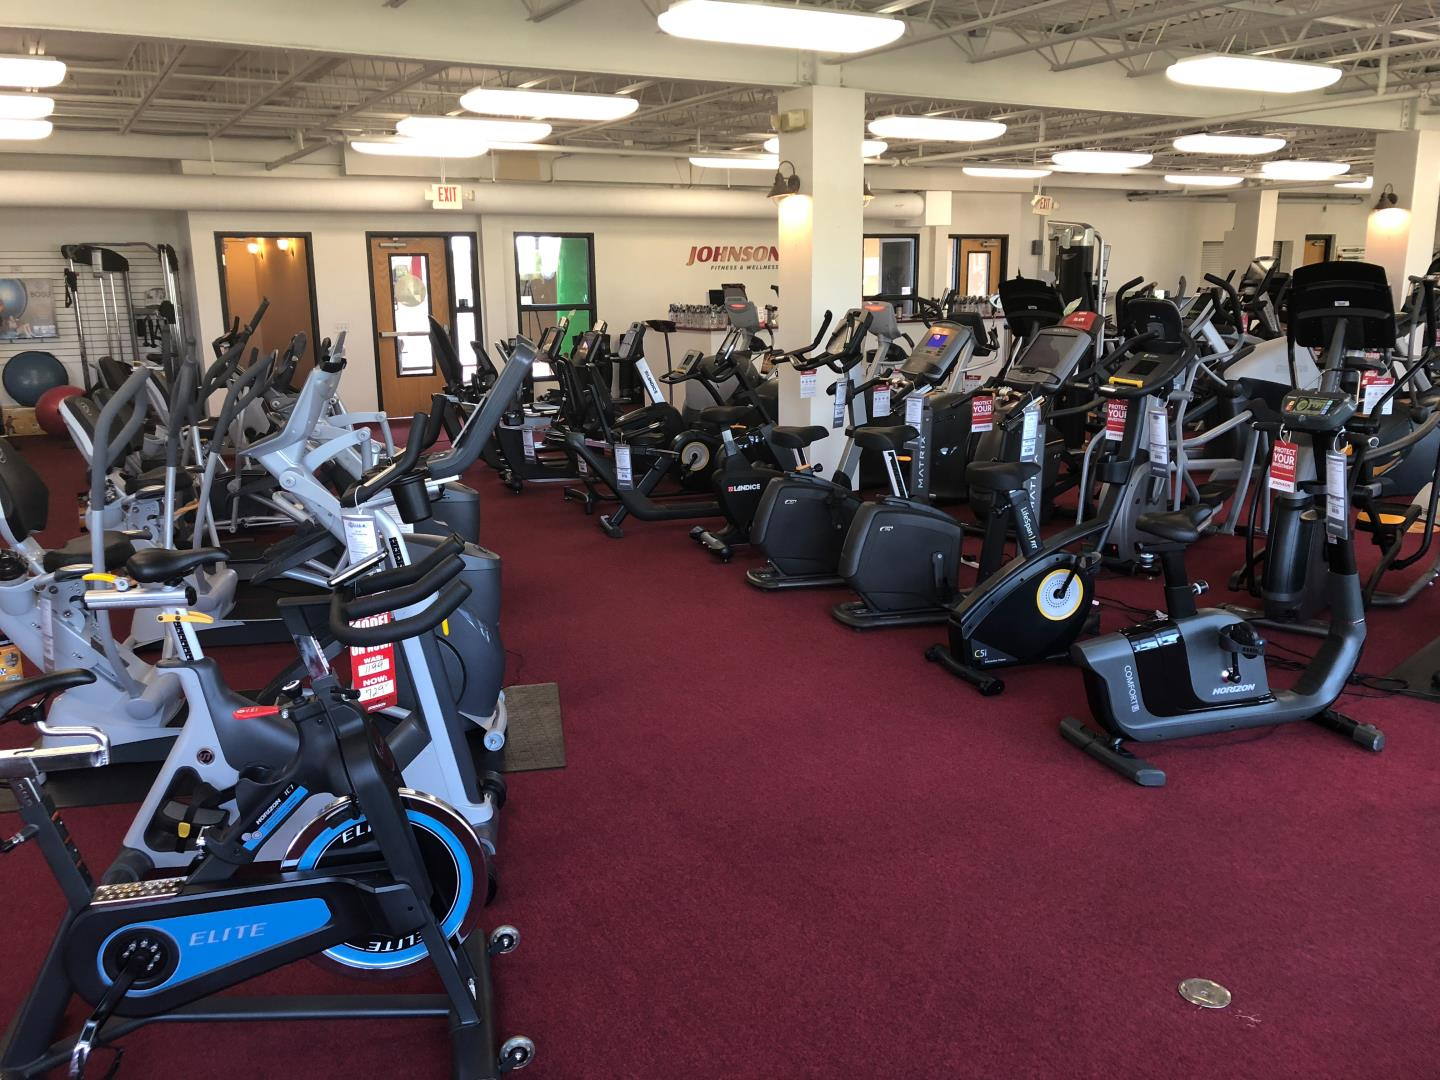 Johnson Fitness & Wellness - Woodbury, MN